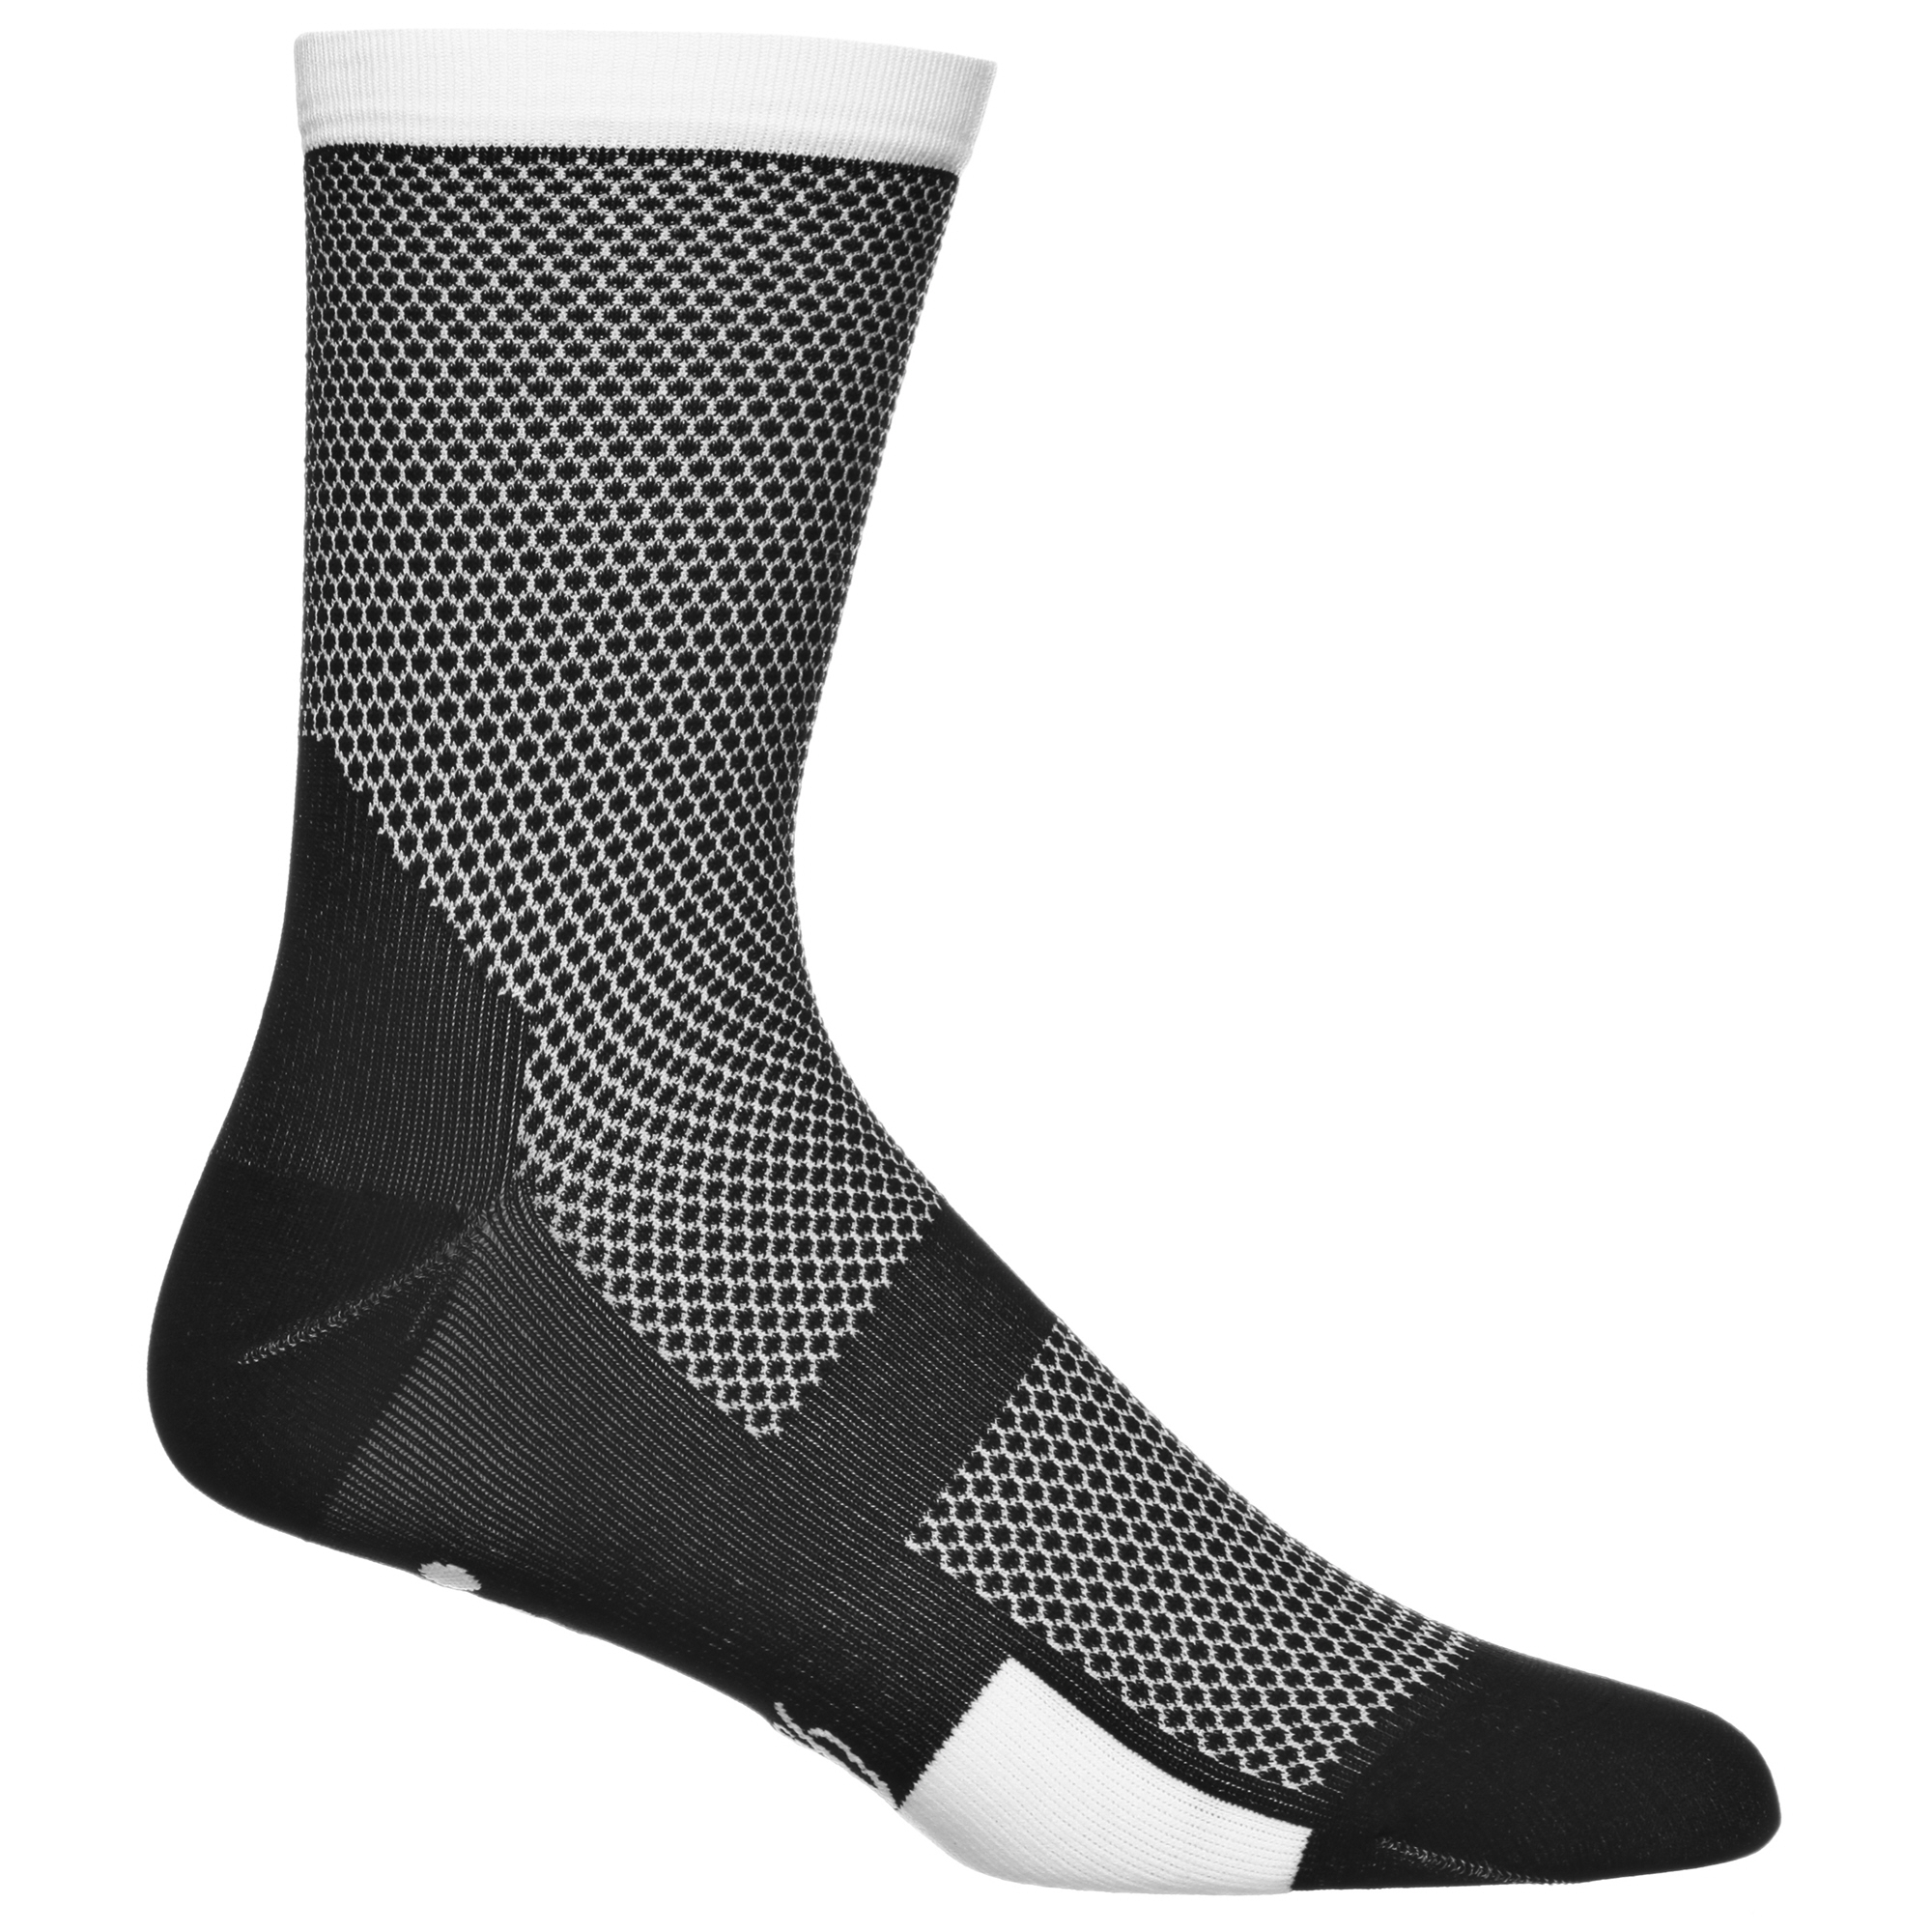 Isadore Climbers Strømper | Socks